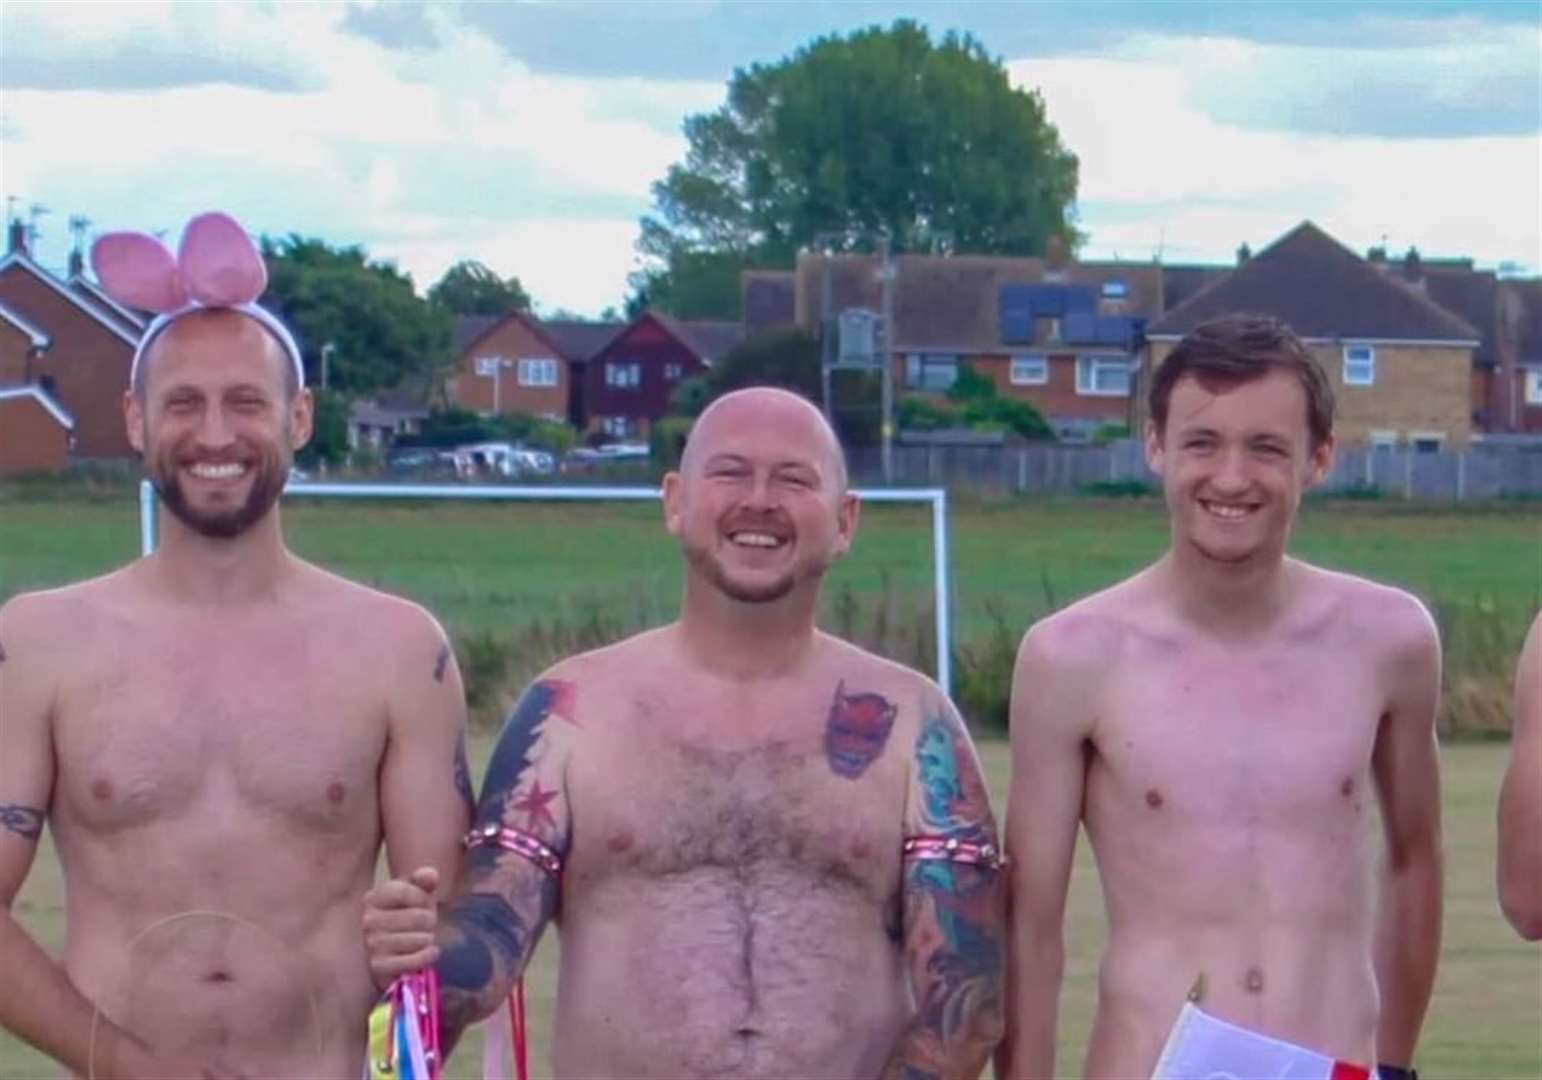 Football club strip for charity